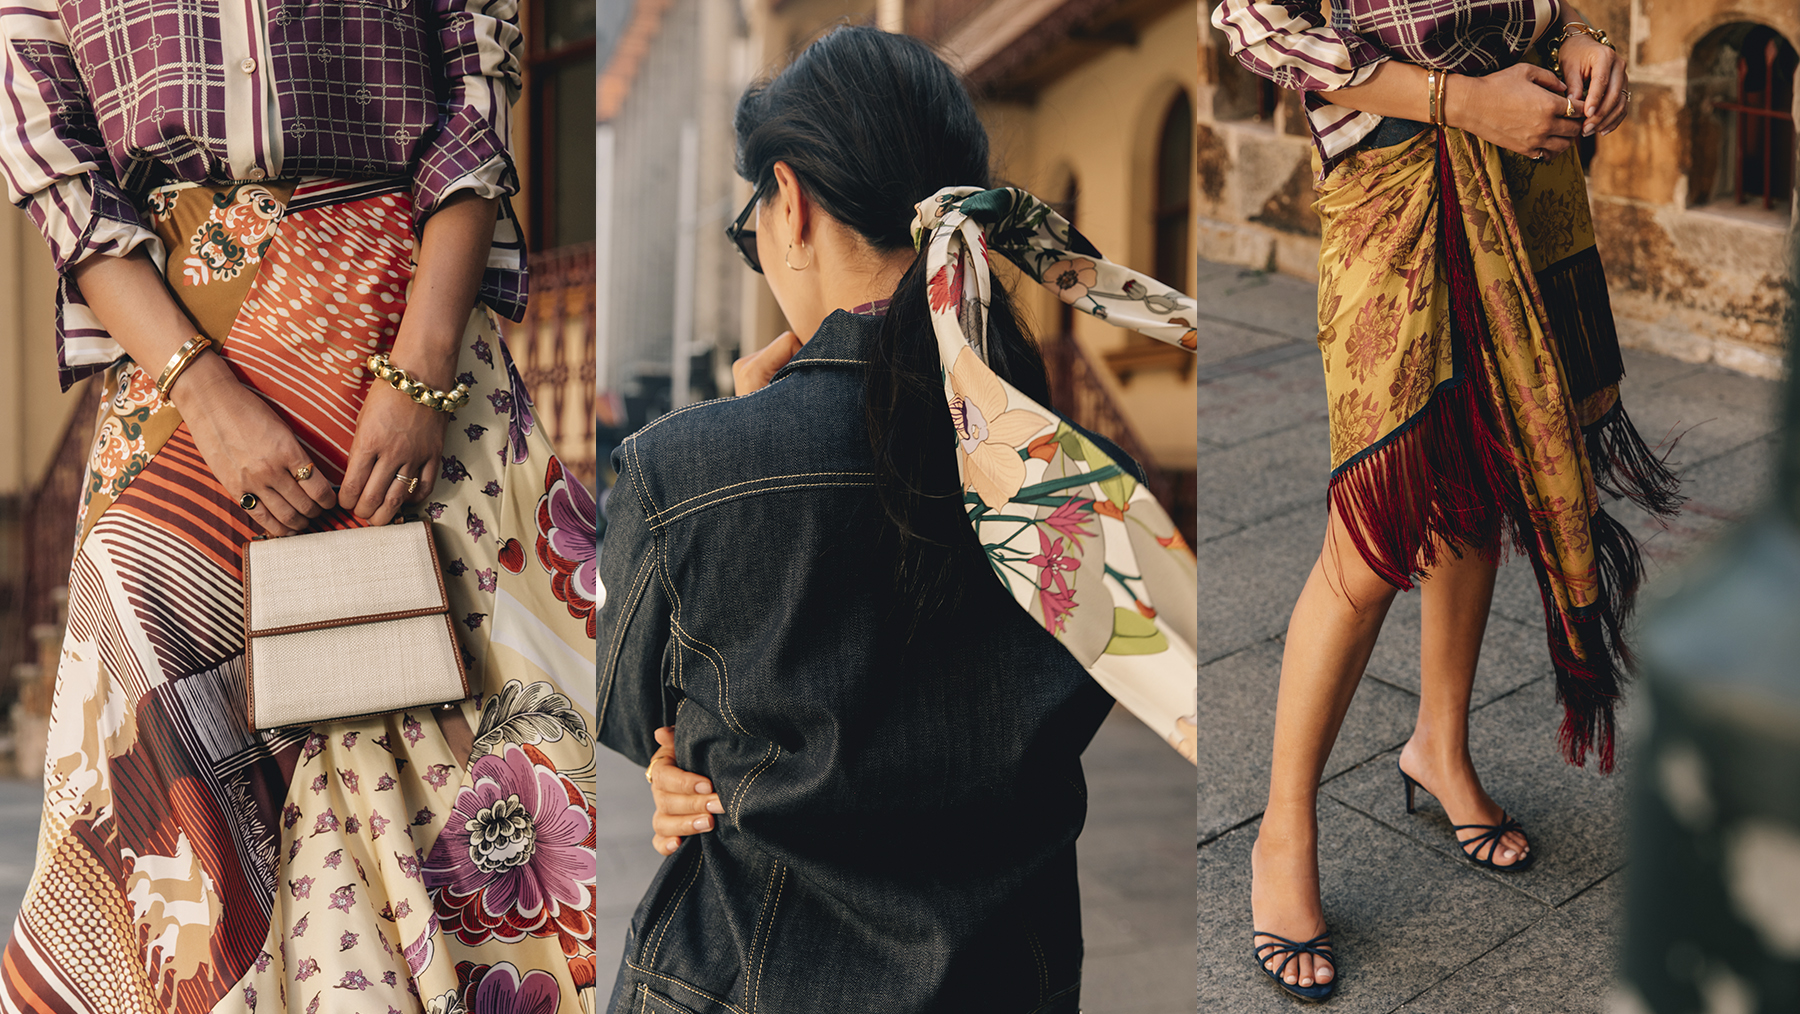 SS19 Fashion Trend Report: The Best Women's Fashion Trends for Spring Summer 2019 | PORTER